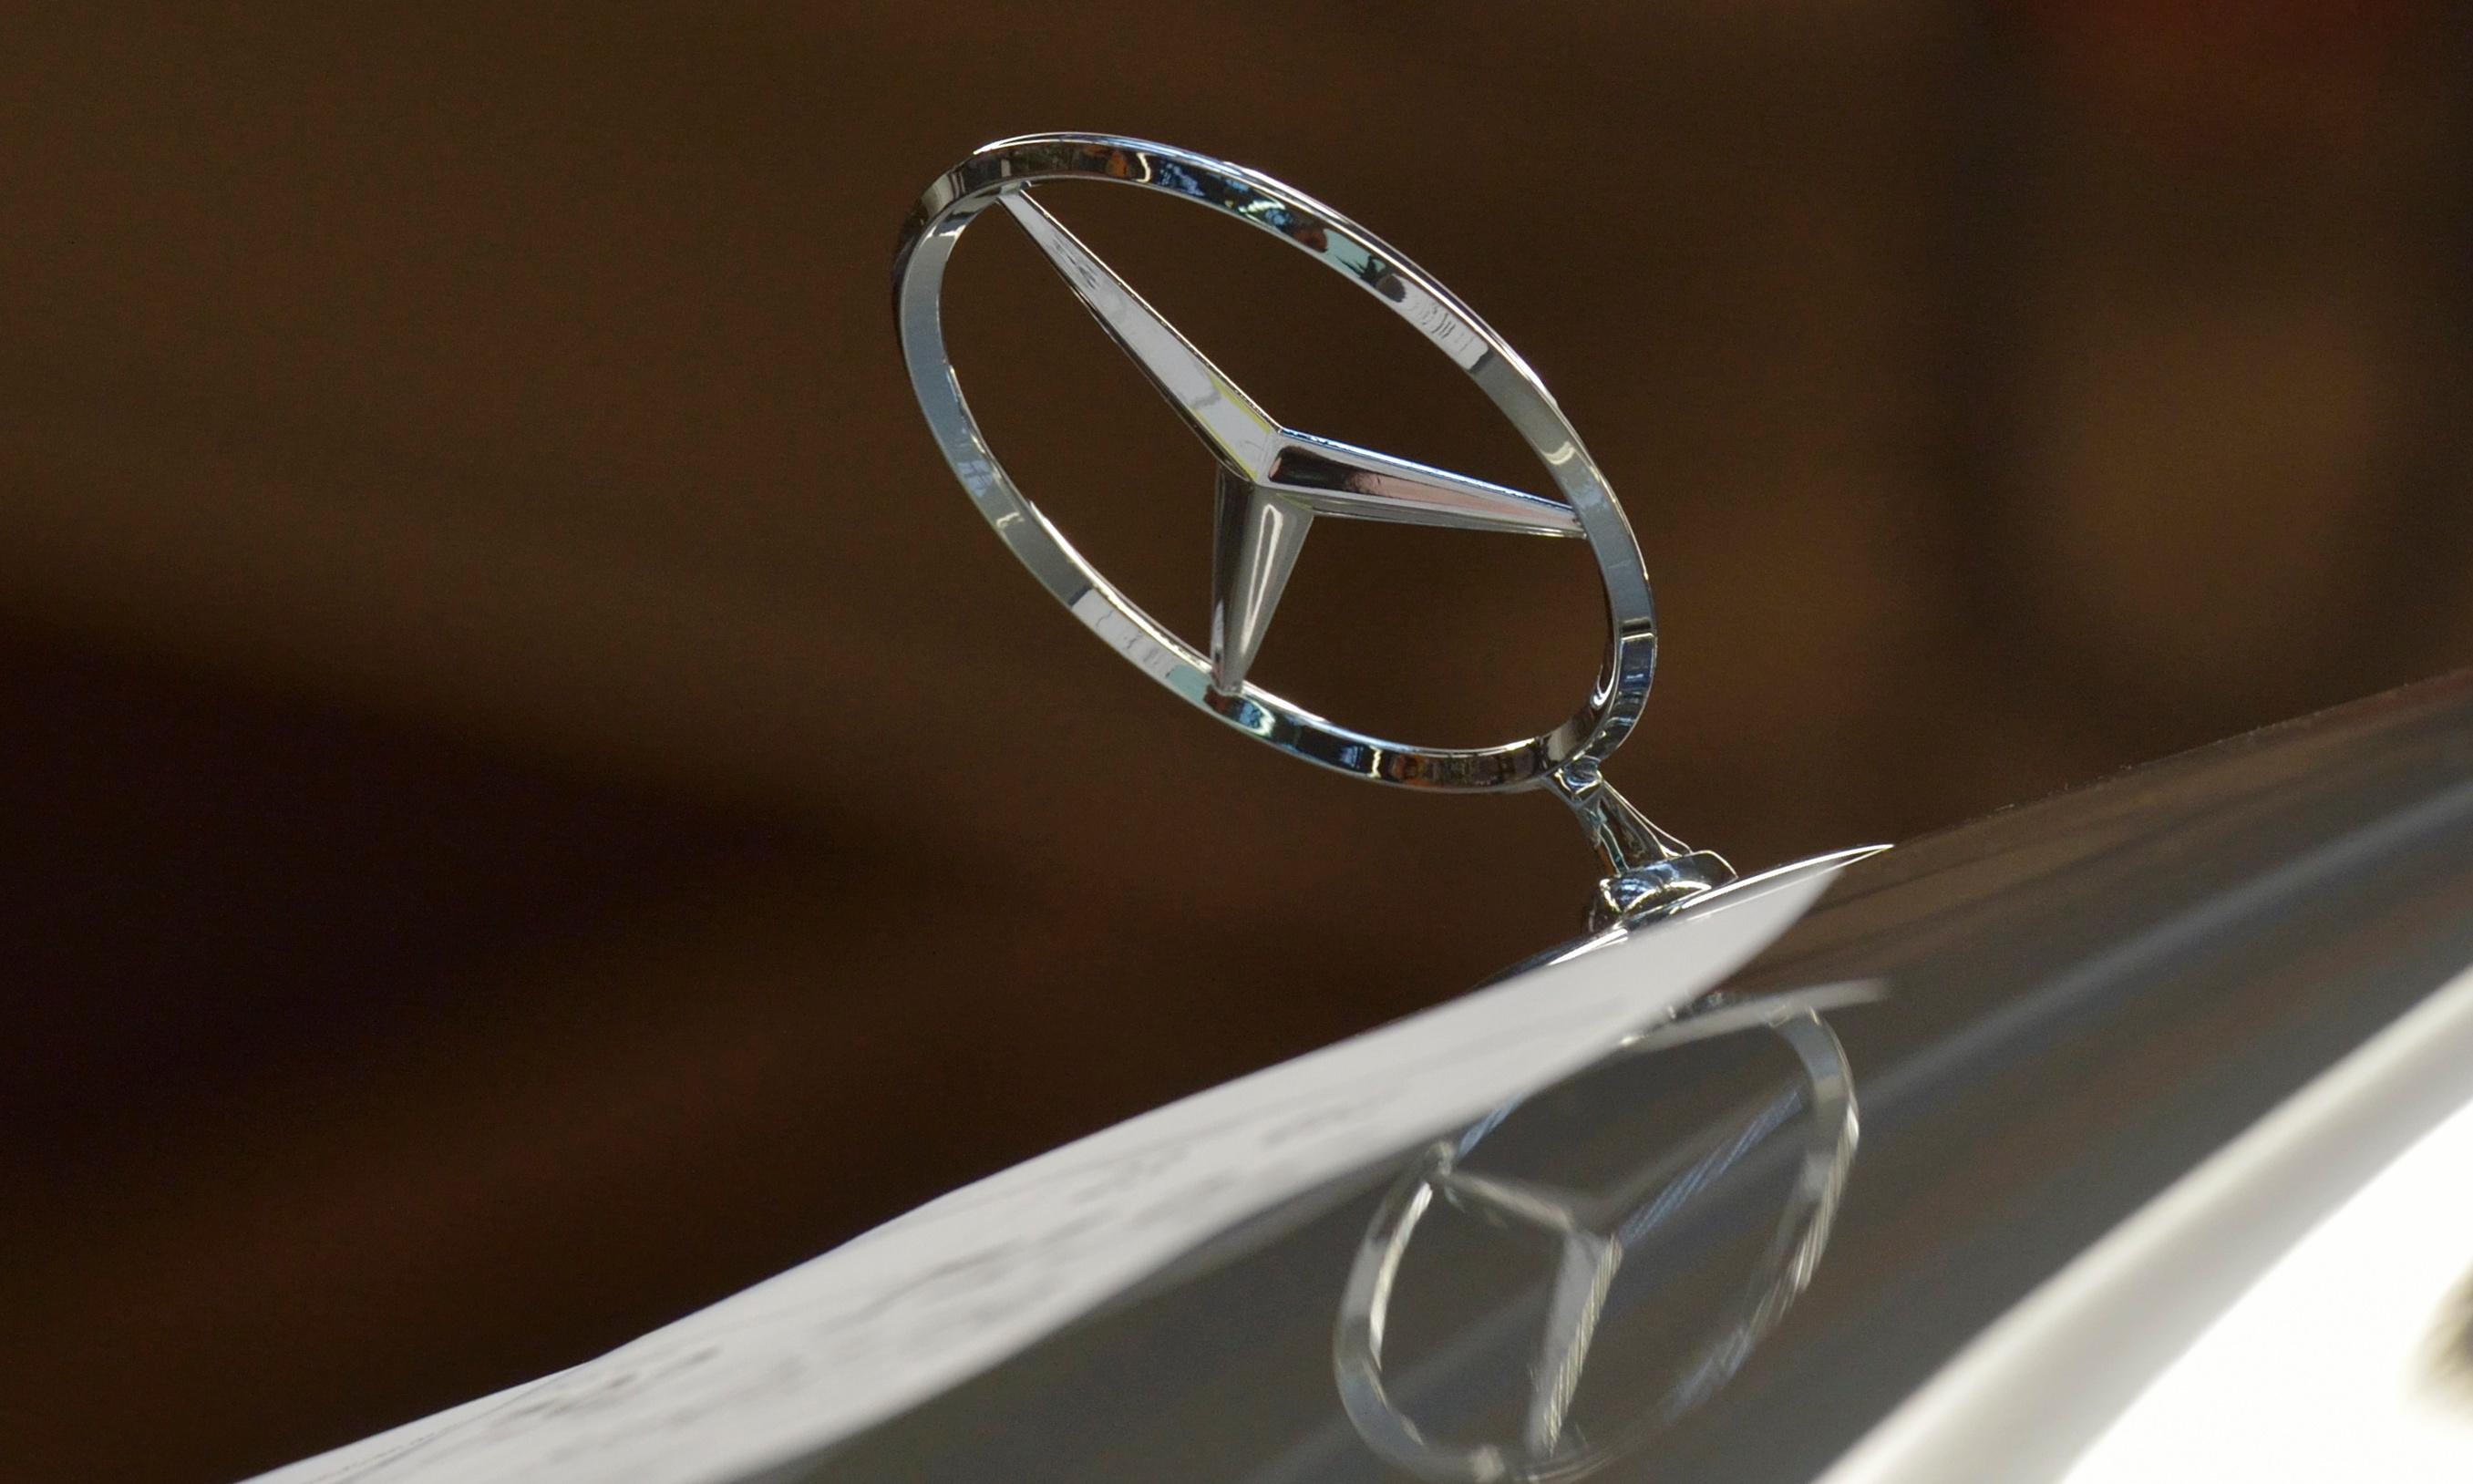 May I have a word about... Mercedes-Benz and its failure to own up